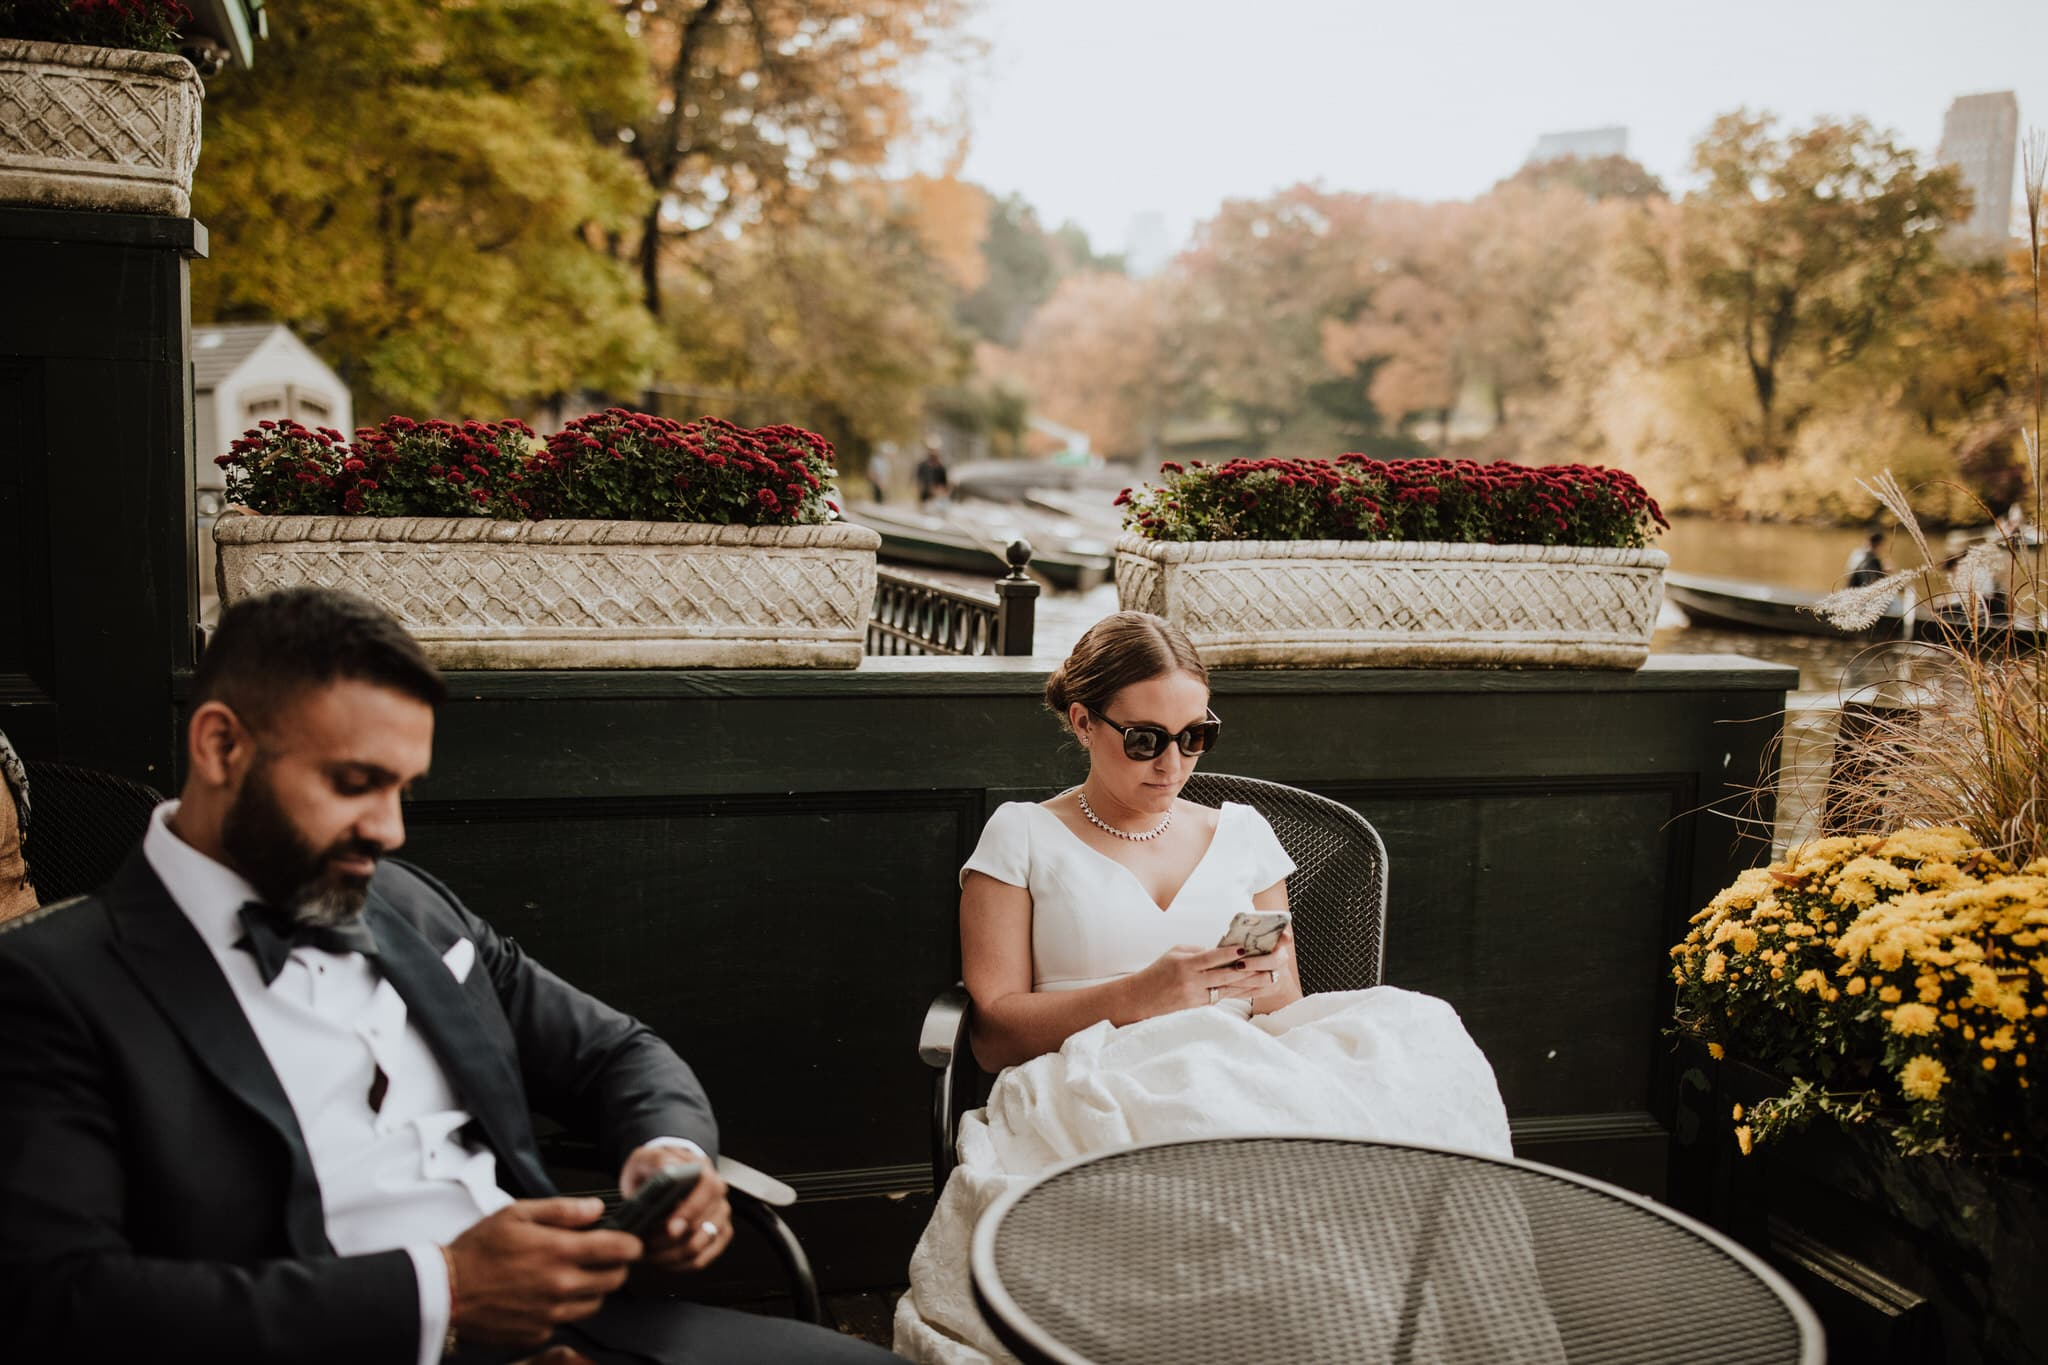 The bride and groom take a break at Tavern on the Green in Central Park, New York City. Wedding Photographer Brent Calis.